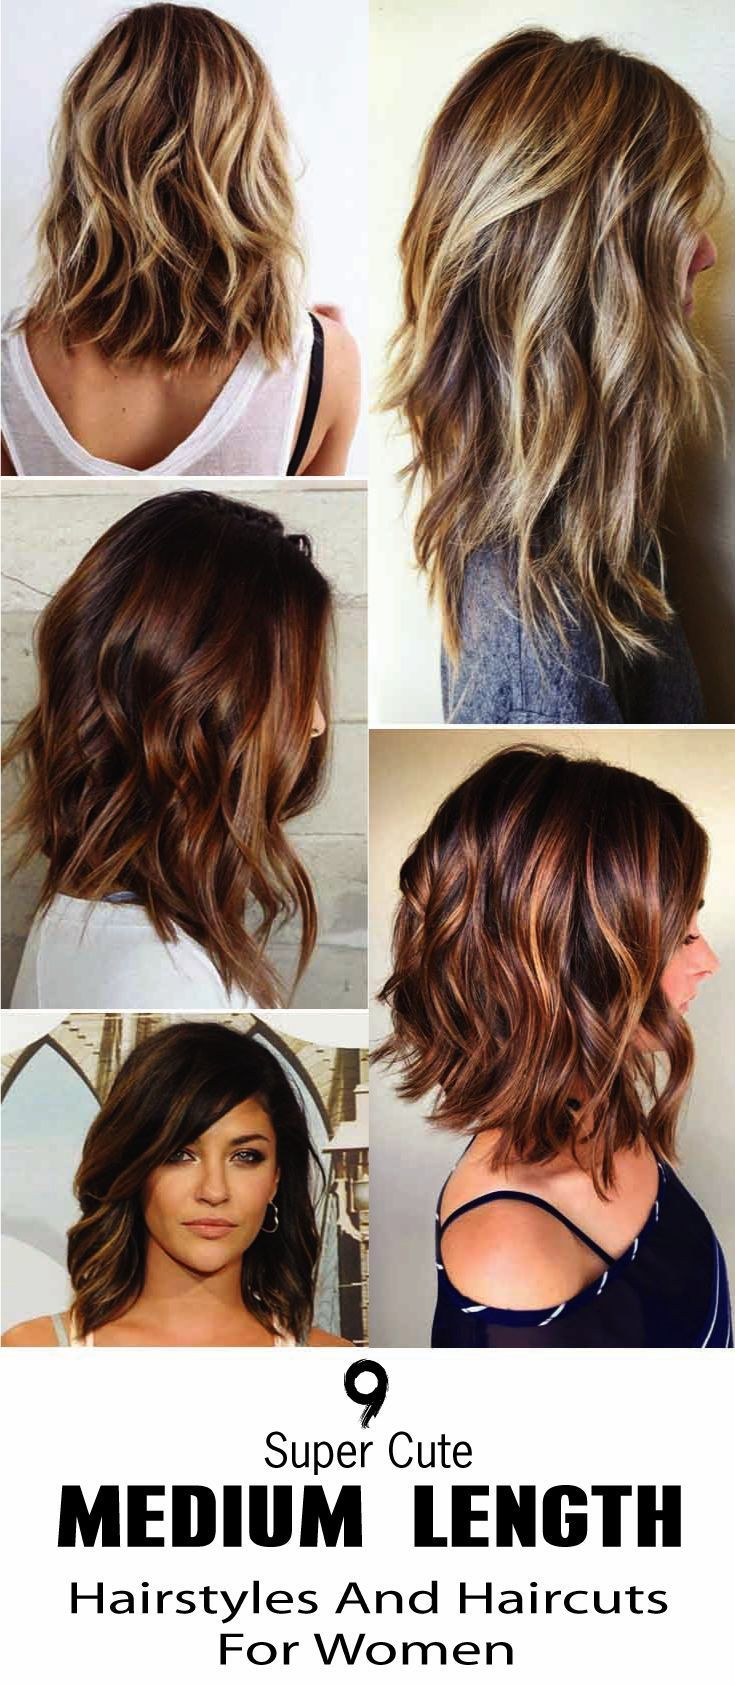 9 Super Cute Medium Length Hairstyles And Haircuts For Women Cute Haircuts Hairstyle H Hair Styles Medium Length Hair Styles Cute Medium Length Hairstyles